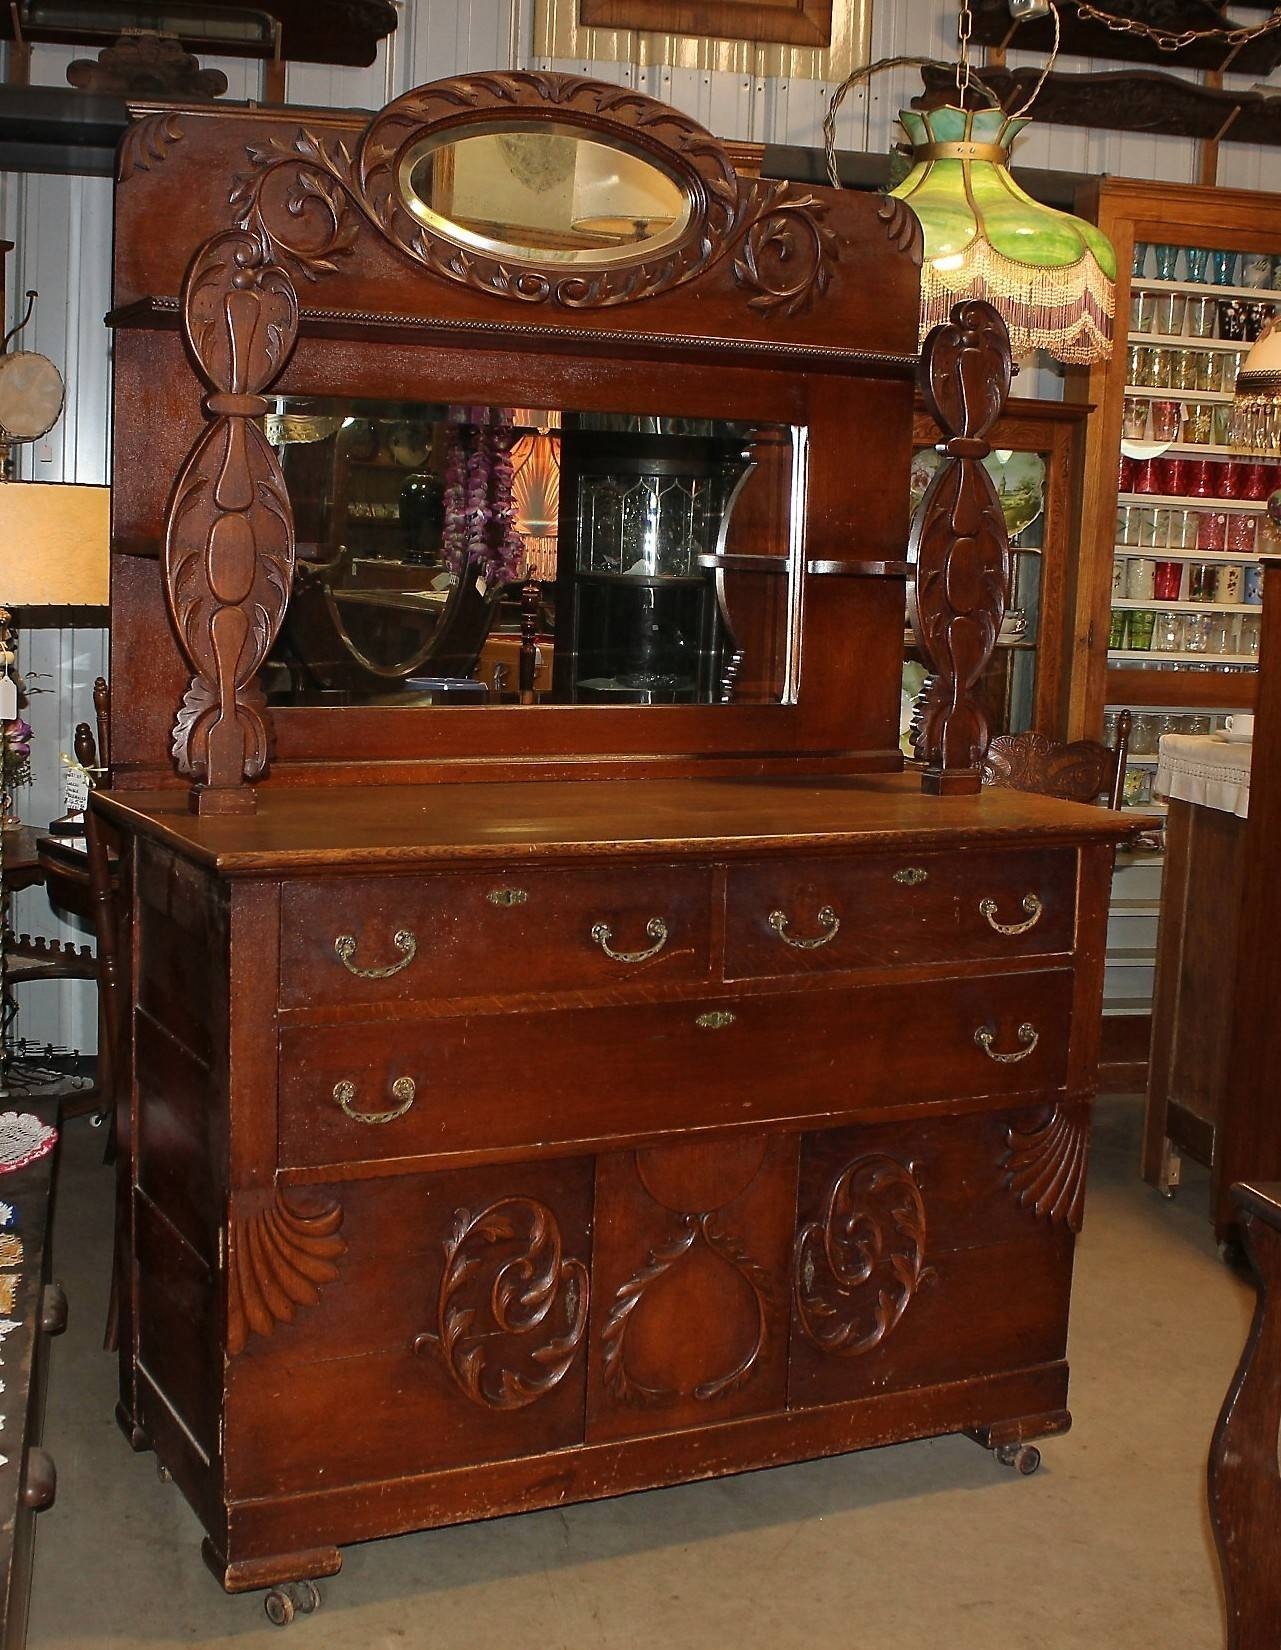 Jeanne's Antiques Crofton Nebraska with regard to Antique Sideboards With Mirror (Image 6 of 15)